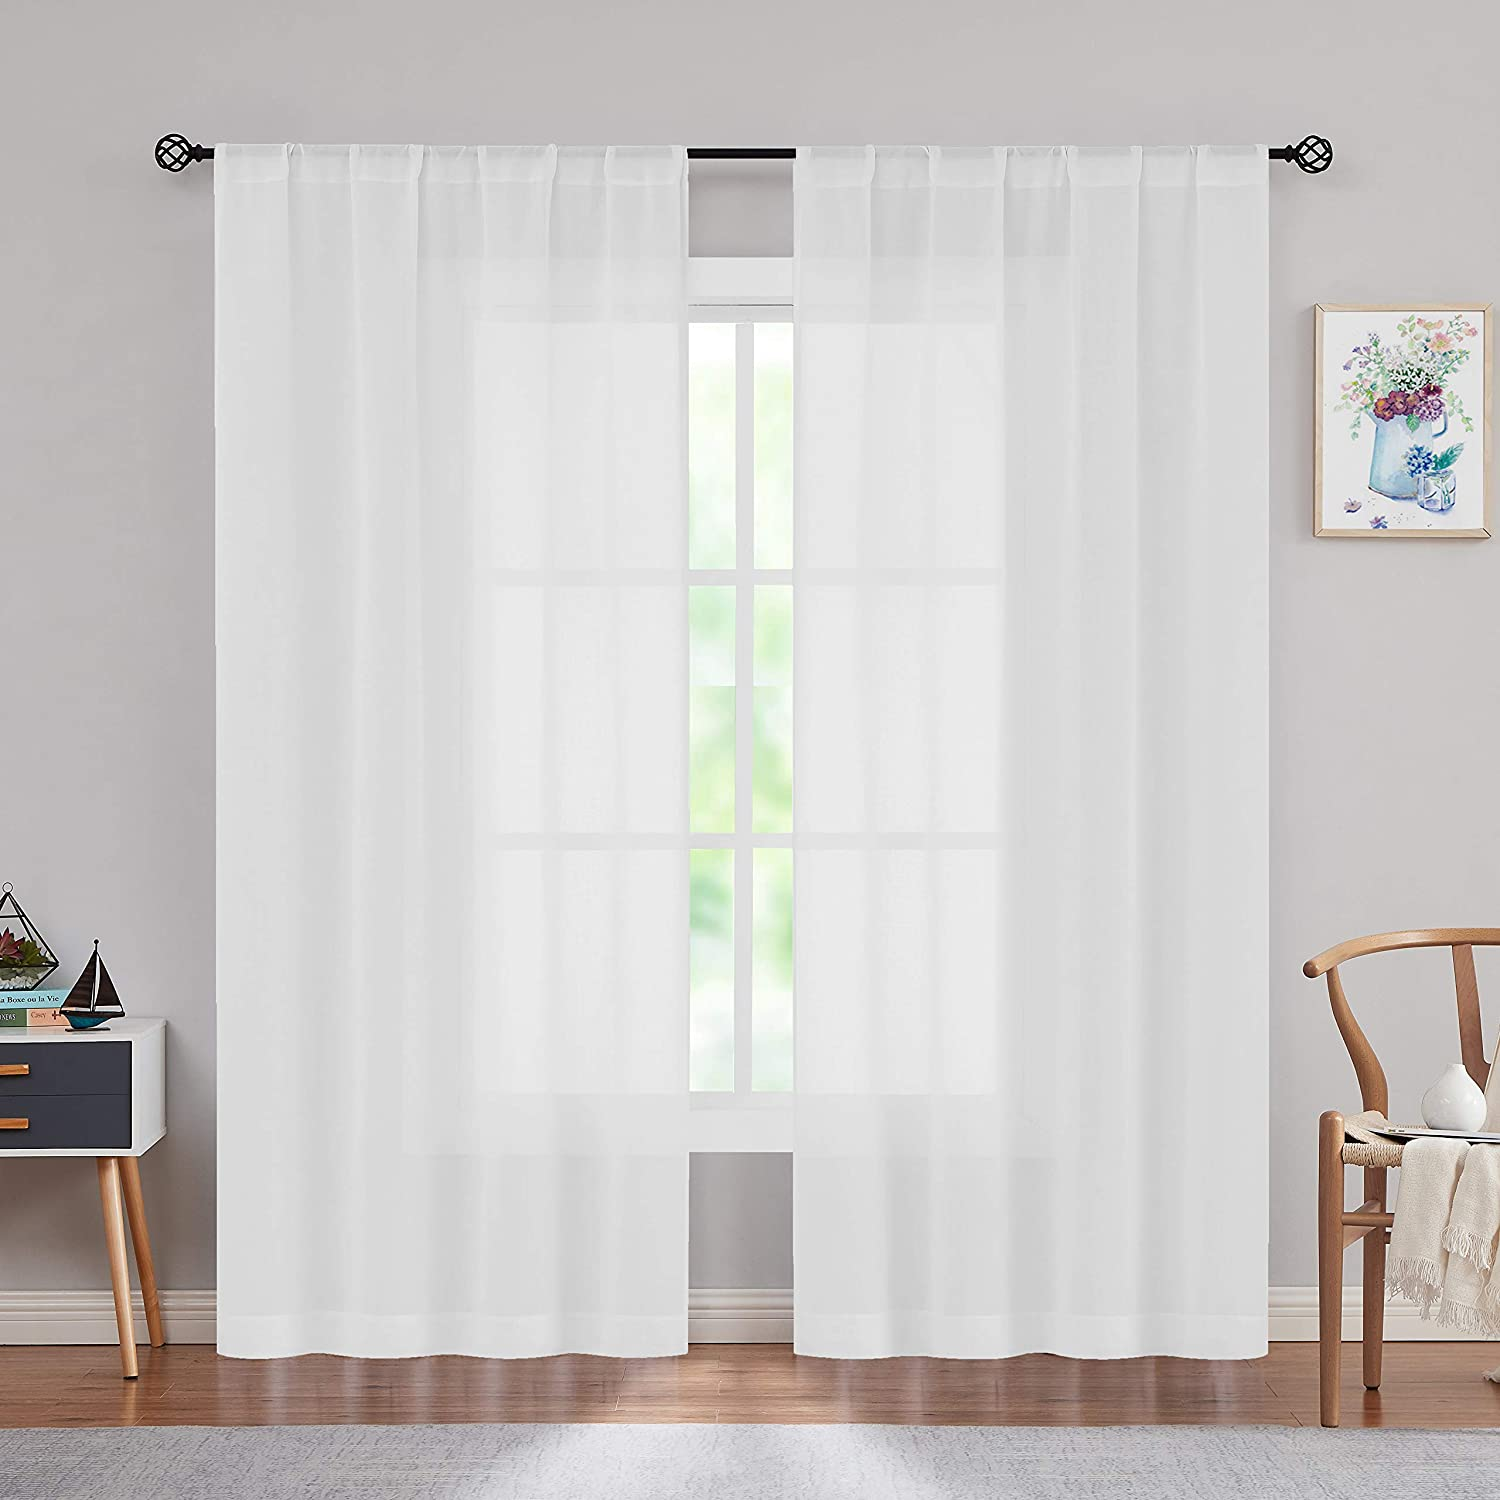 Fire Resistant White Sheer Window Curtains Flame Resistant Cotton Feel Batise Sheer Drapes Window Treatment Sets for Home Office, Hotel, School, Set of 2, 38x95 Inches